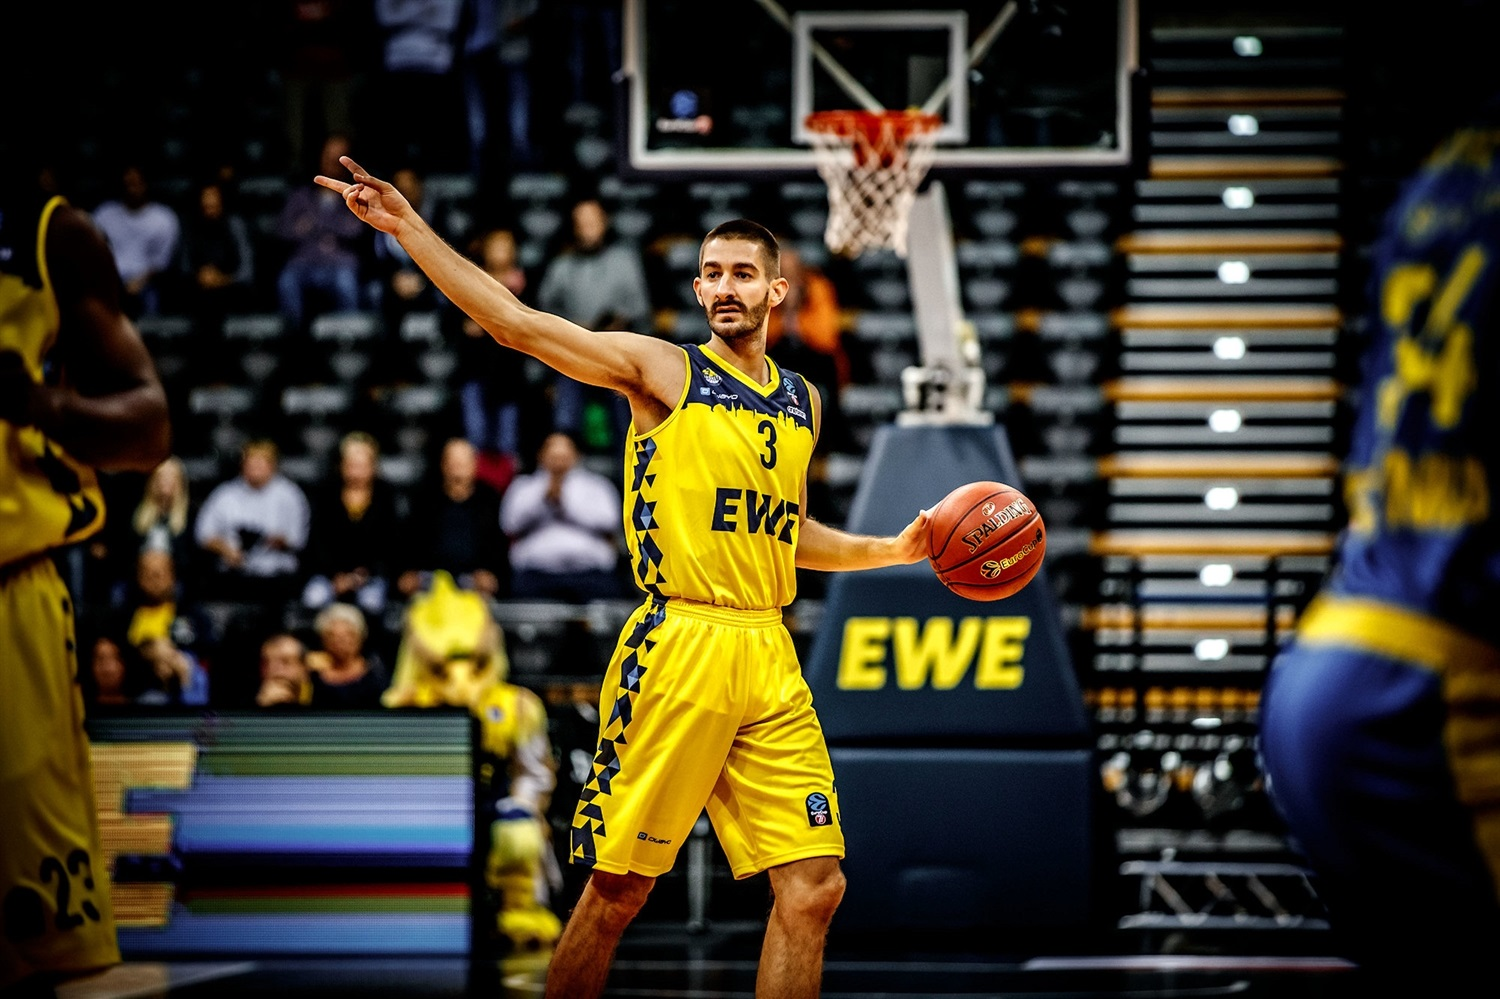 Braydon Hobbs - EWE Baskets Oldenburg (photo Ulf Duda - fotoduda.de) - EC19